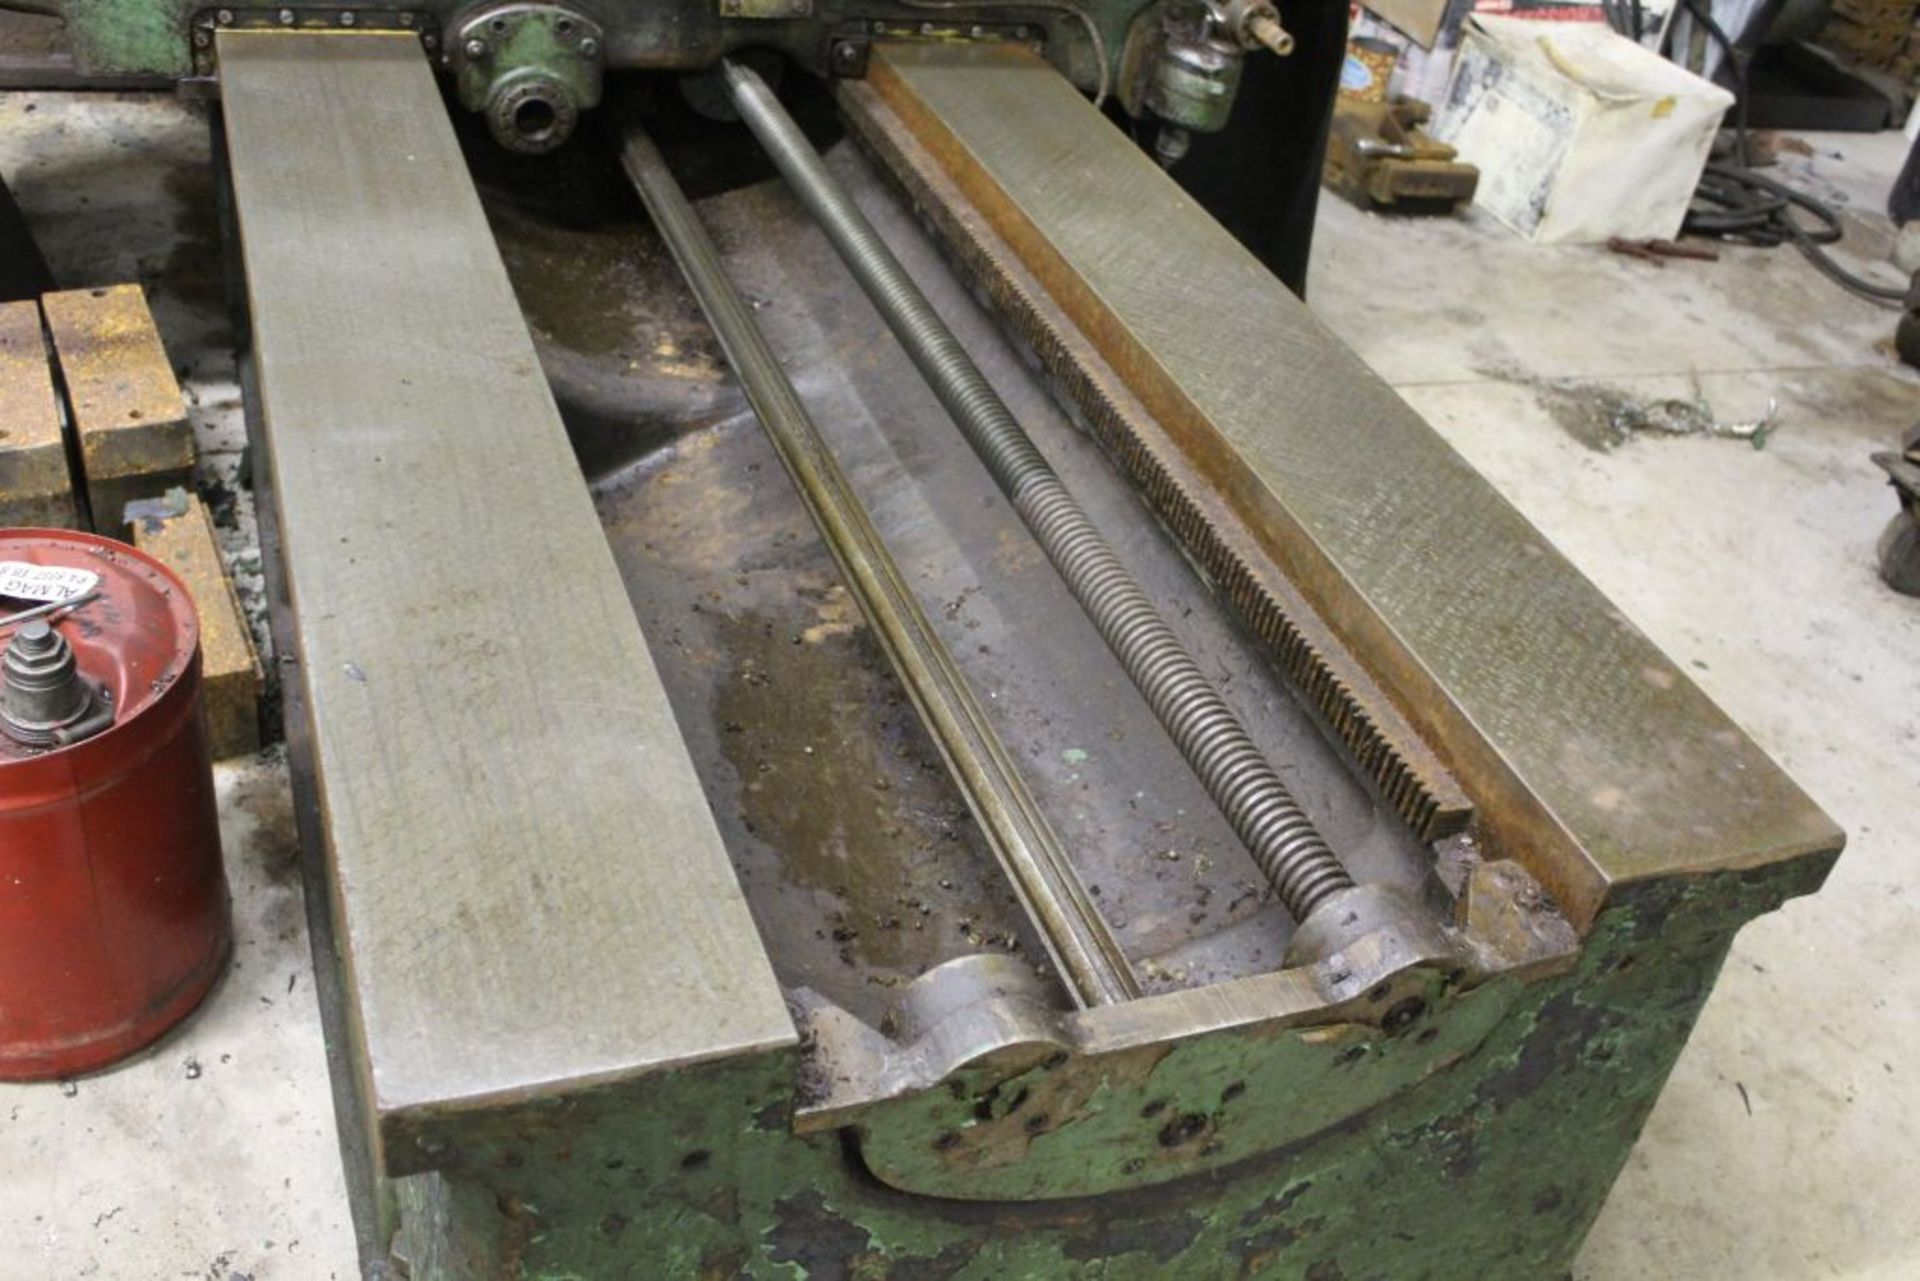 """Giddings & Lewis boring mill, No 30, 30"""" x 62"""" bed, 55"""" height adjustment, 13"""", EG&G digital read - Image 5 of 13"""